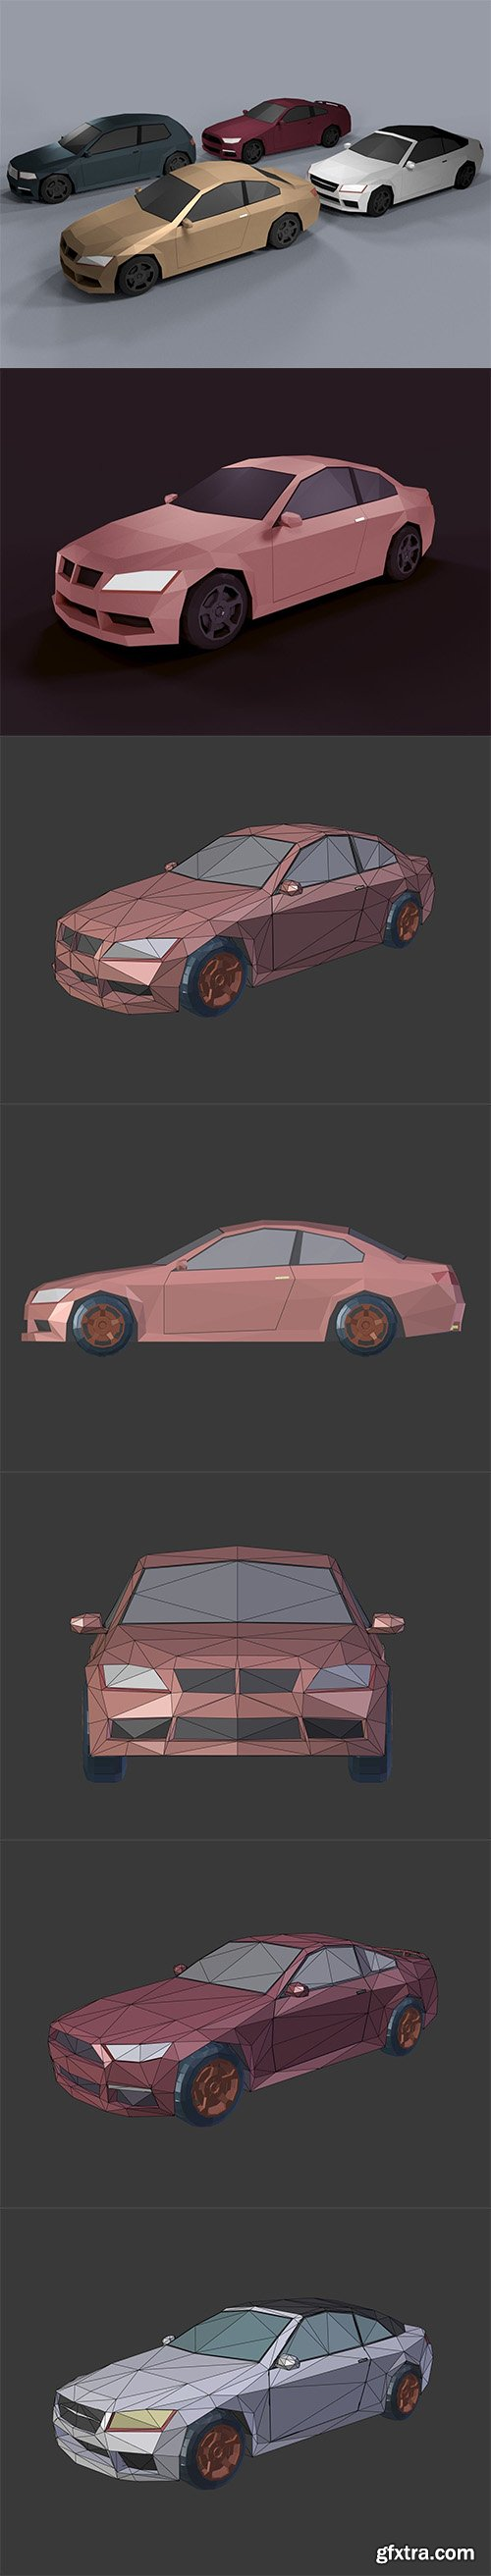 Cgtrader - Low Poly Cartoon Cars Low-poly 3D model